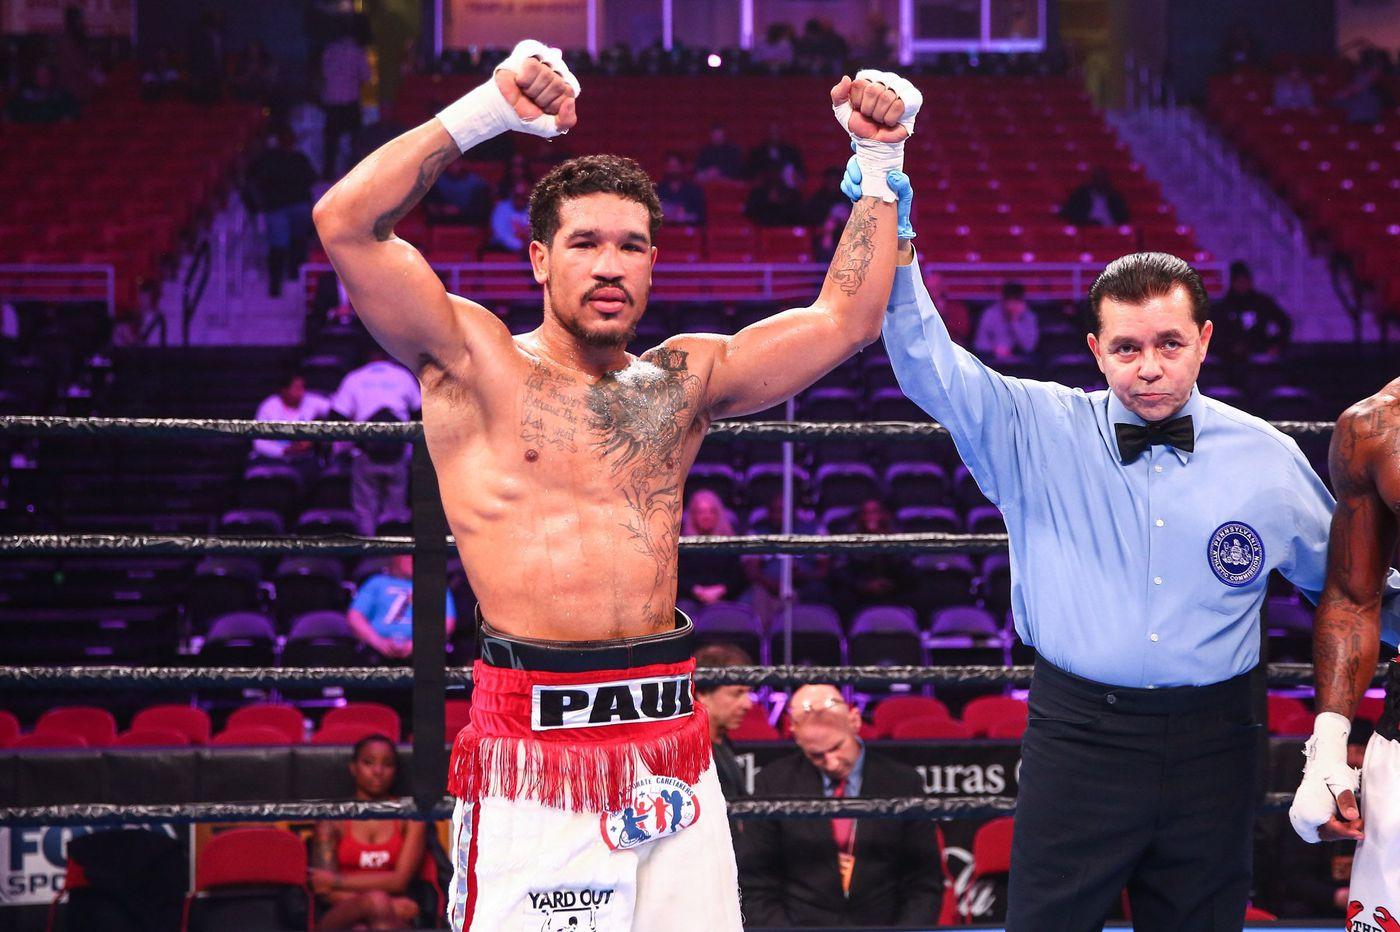 Philly boxing prospect Paul Kroll defeats Luke Santamaria via unanimous decision in first big test